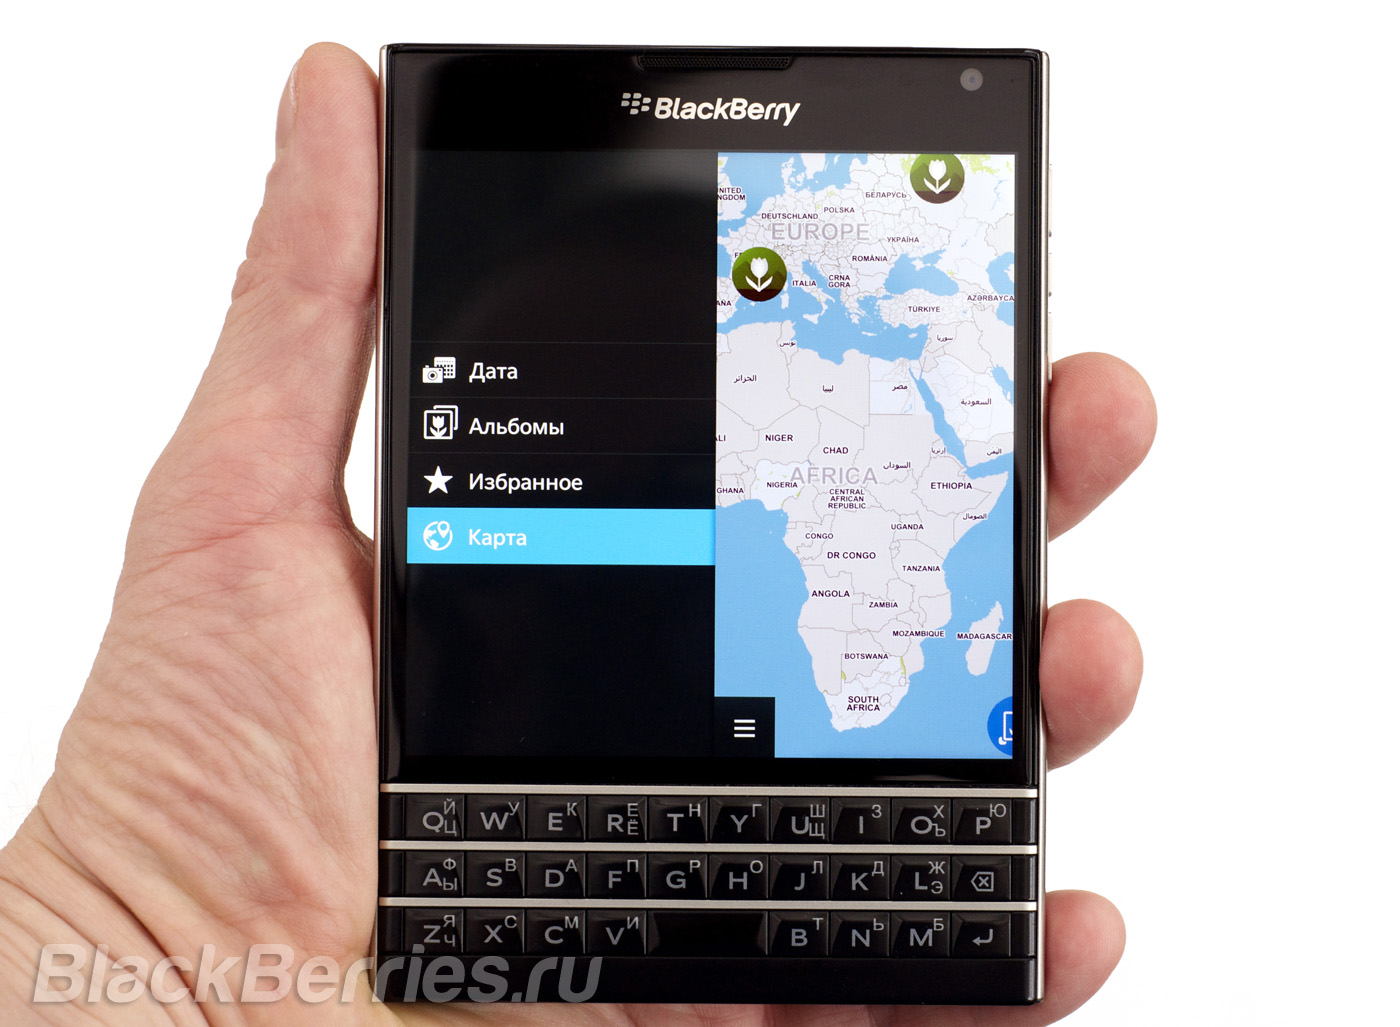 BlackBerry-Passport-Maps-images-1